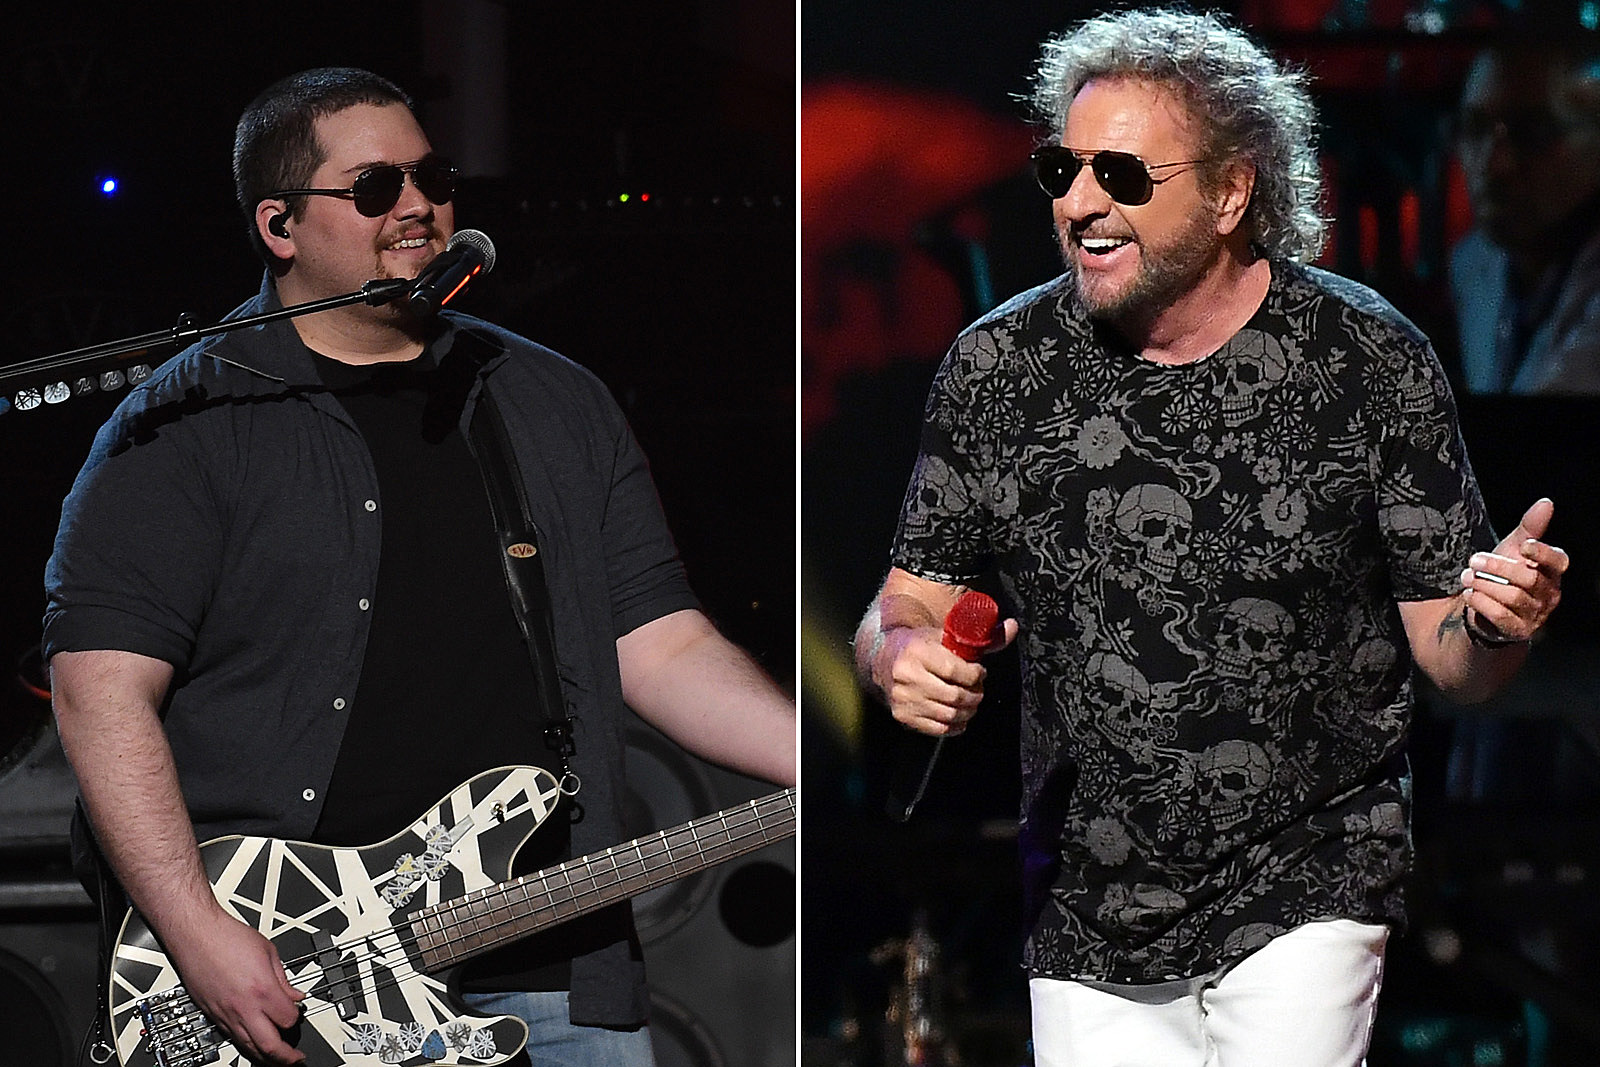 Sammy Hagar Wants to 'Do Some Shows' With Wolfgang Van Halen